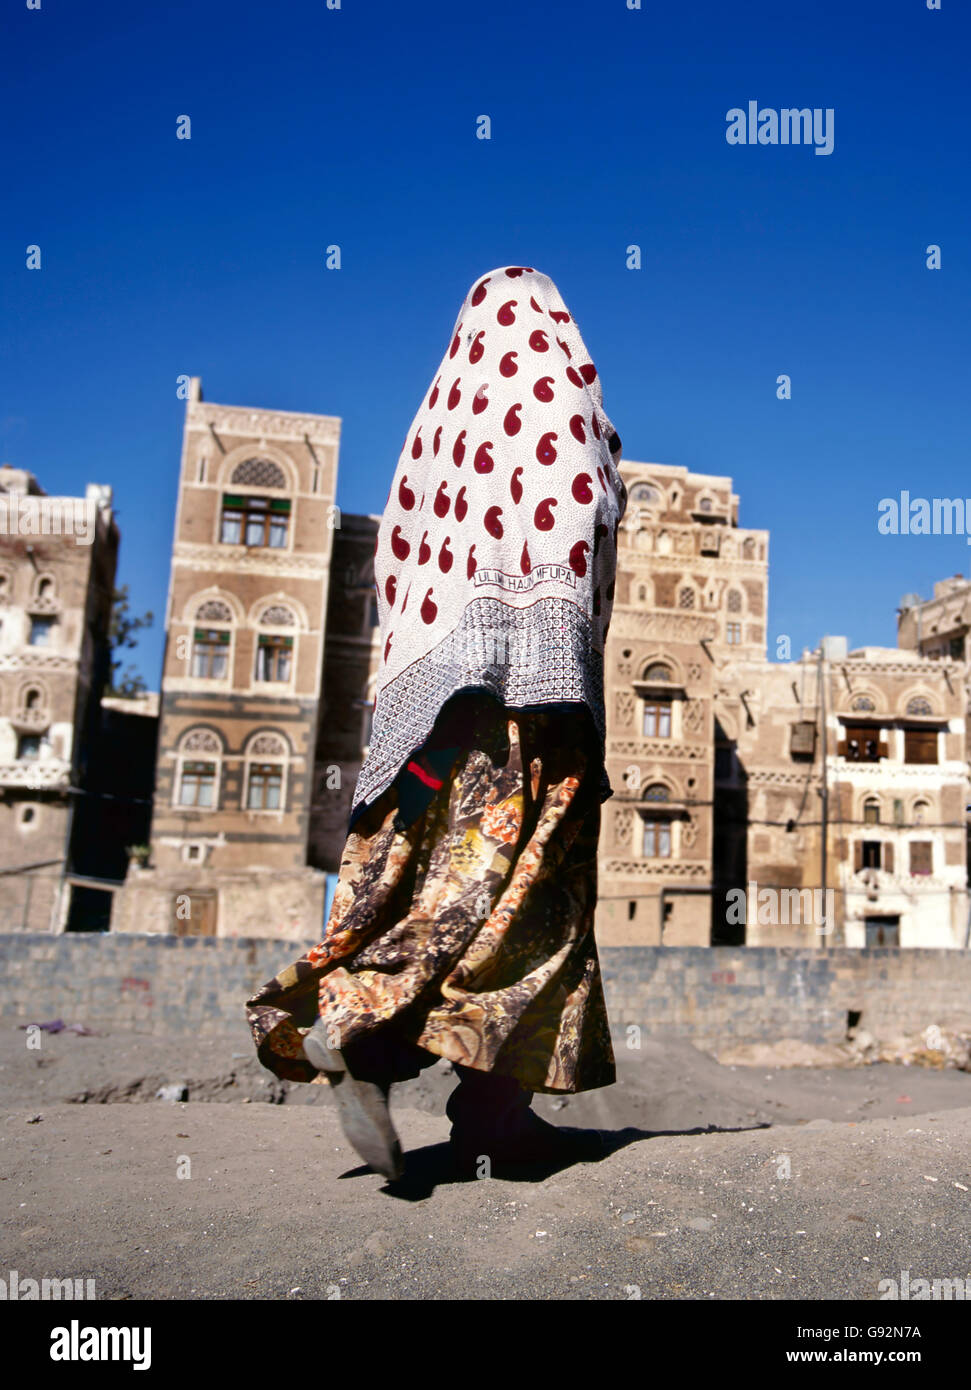 Sana'a, Yemen-February 12, 2012: A veiled Muslim woman walks on a Sana'a street, Yemen. At background typical - Stock Image